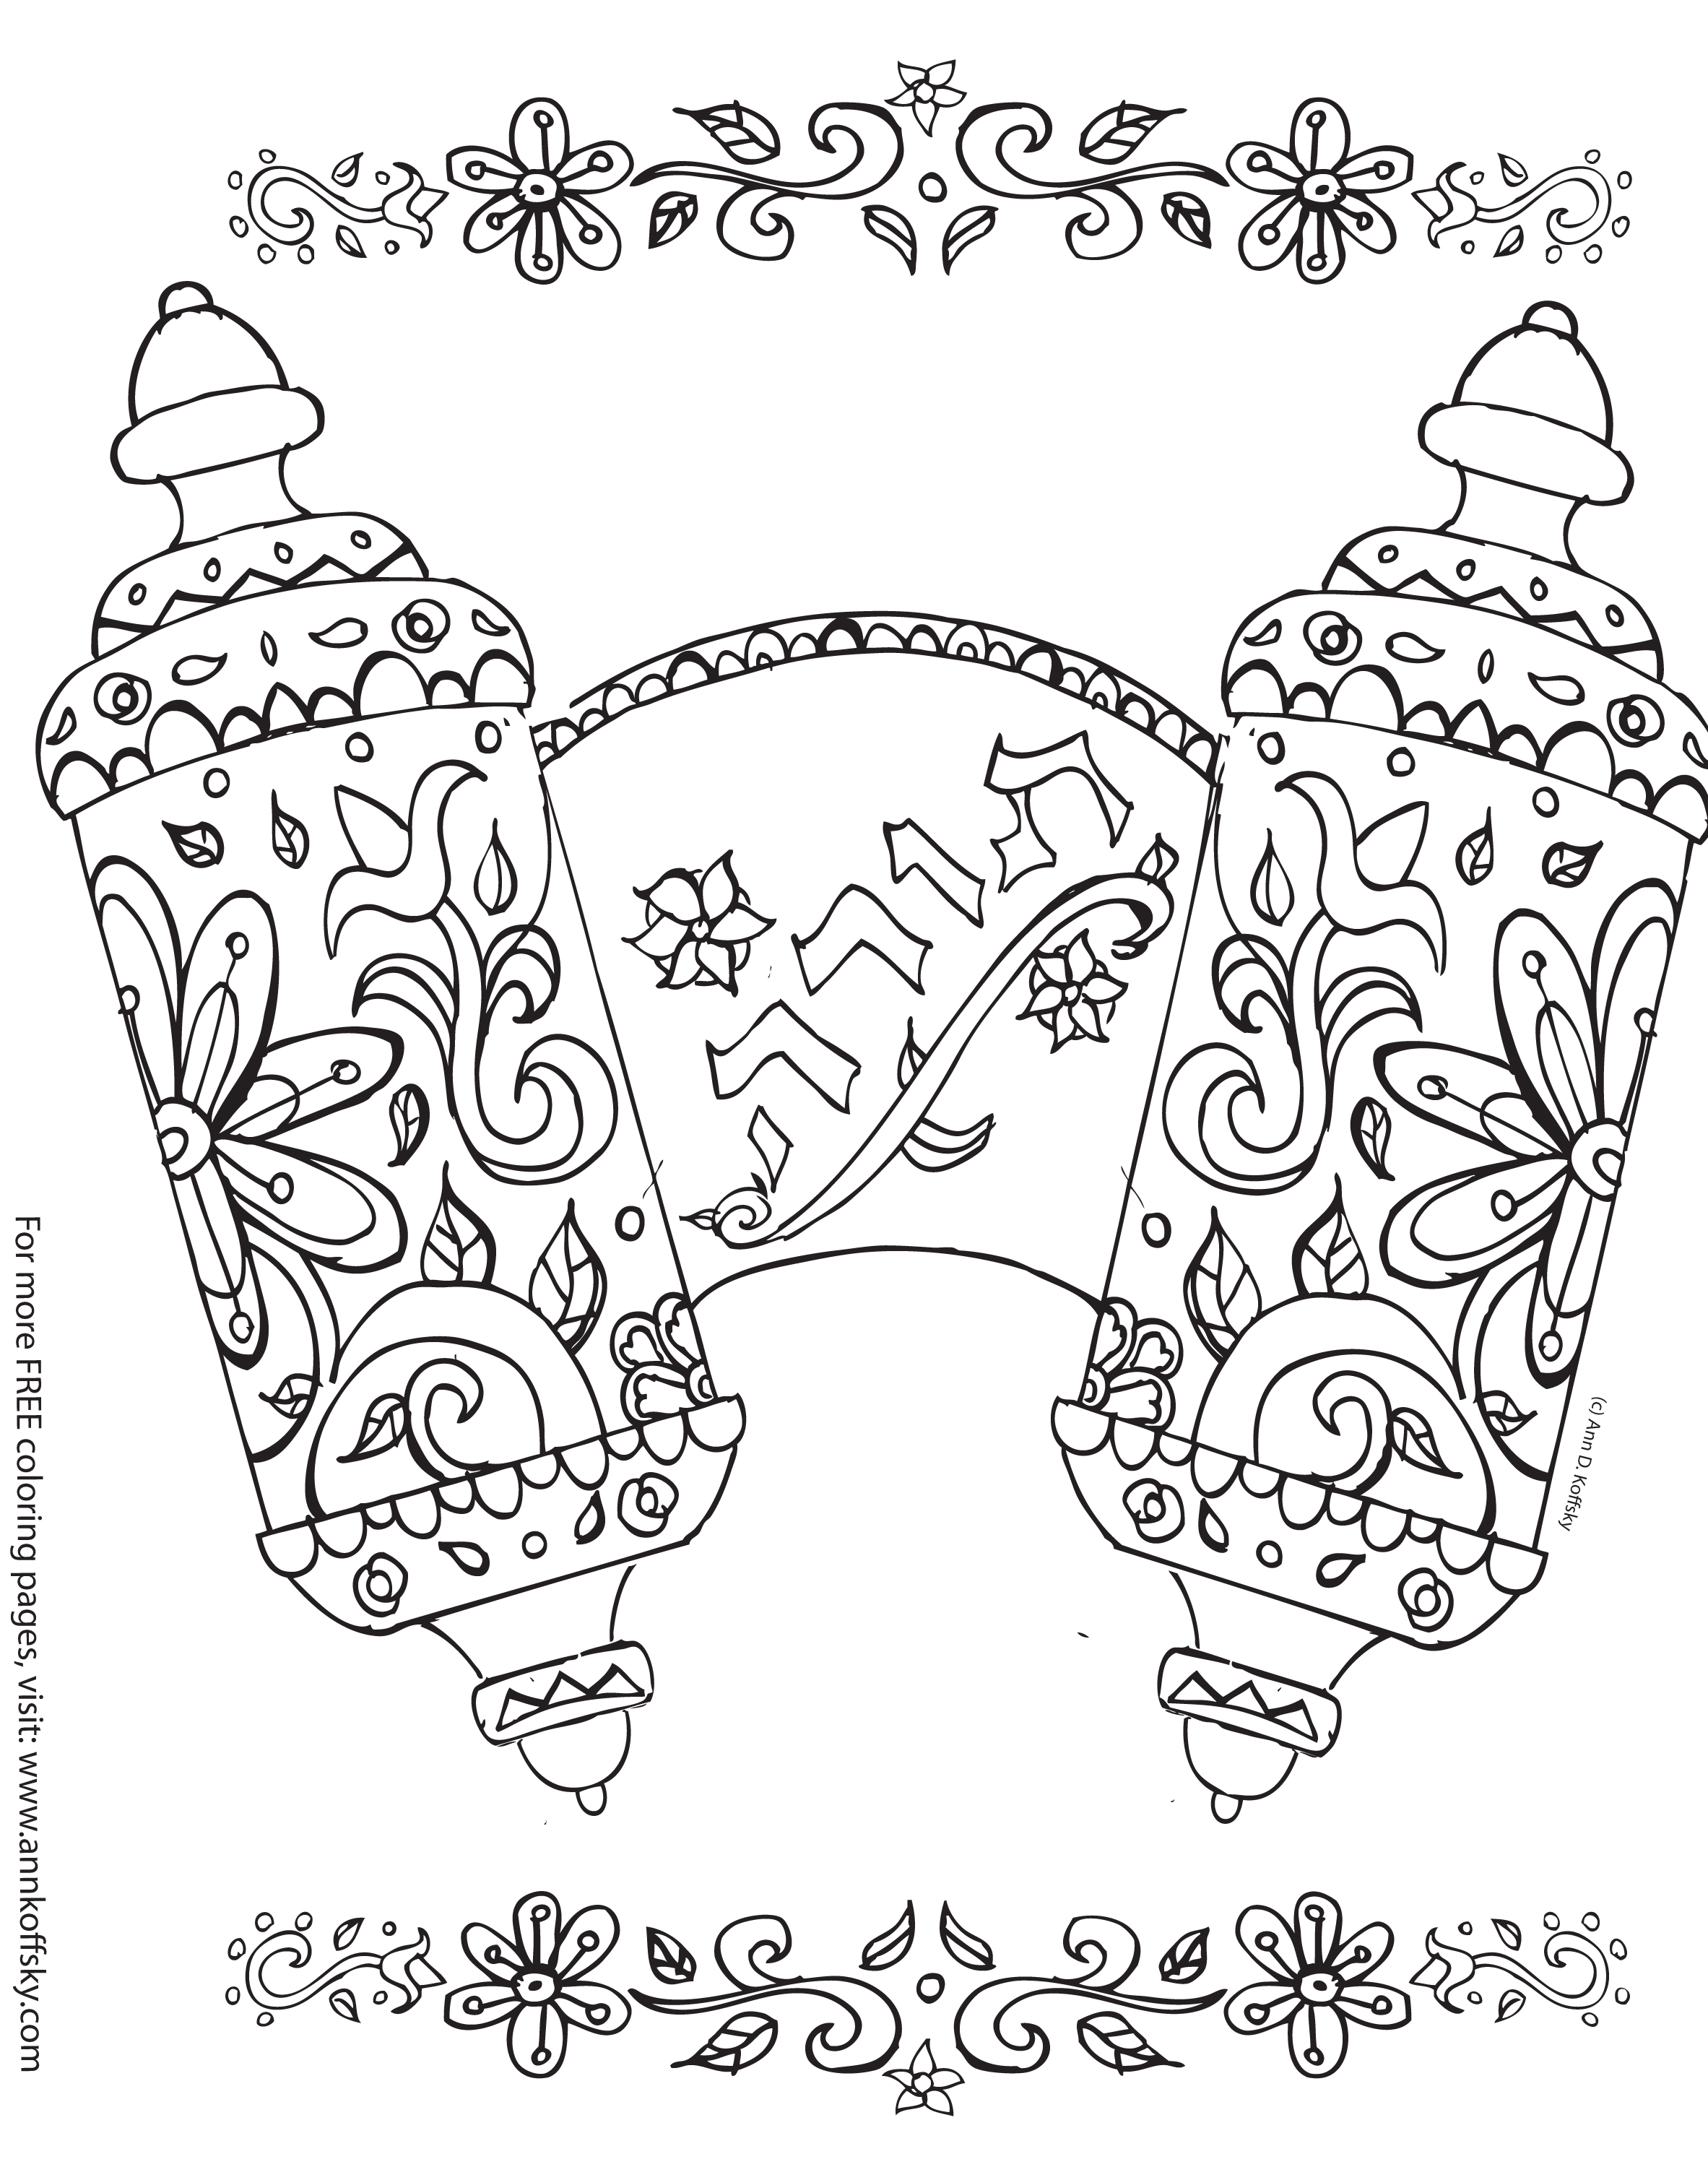 Israel Independence Day Coloring Pages